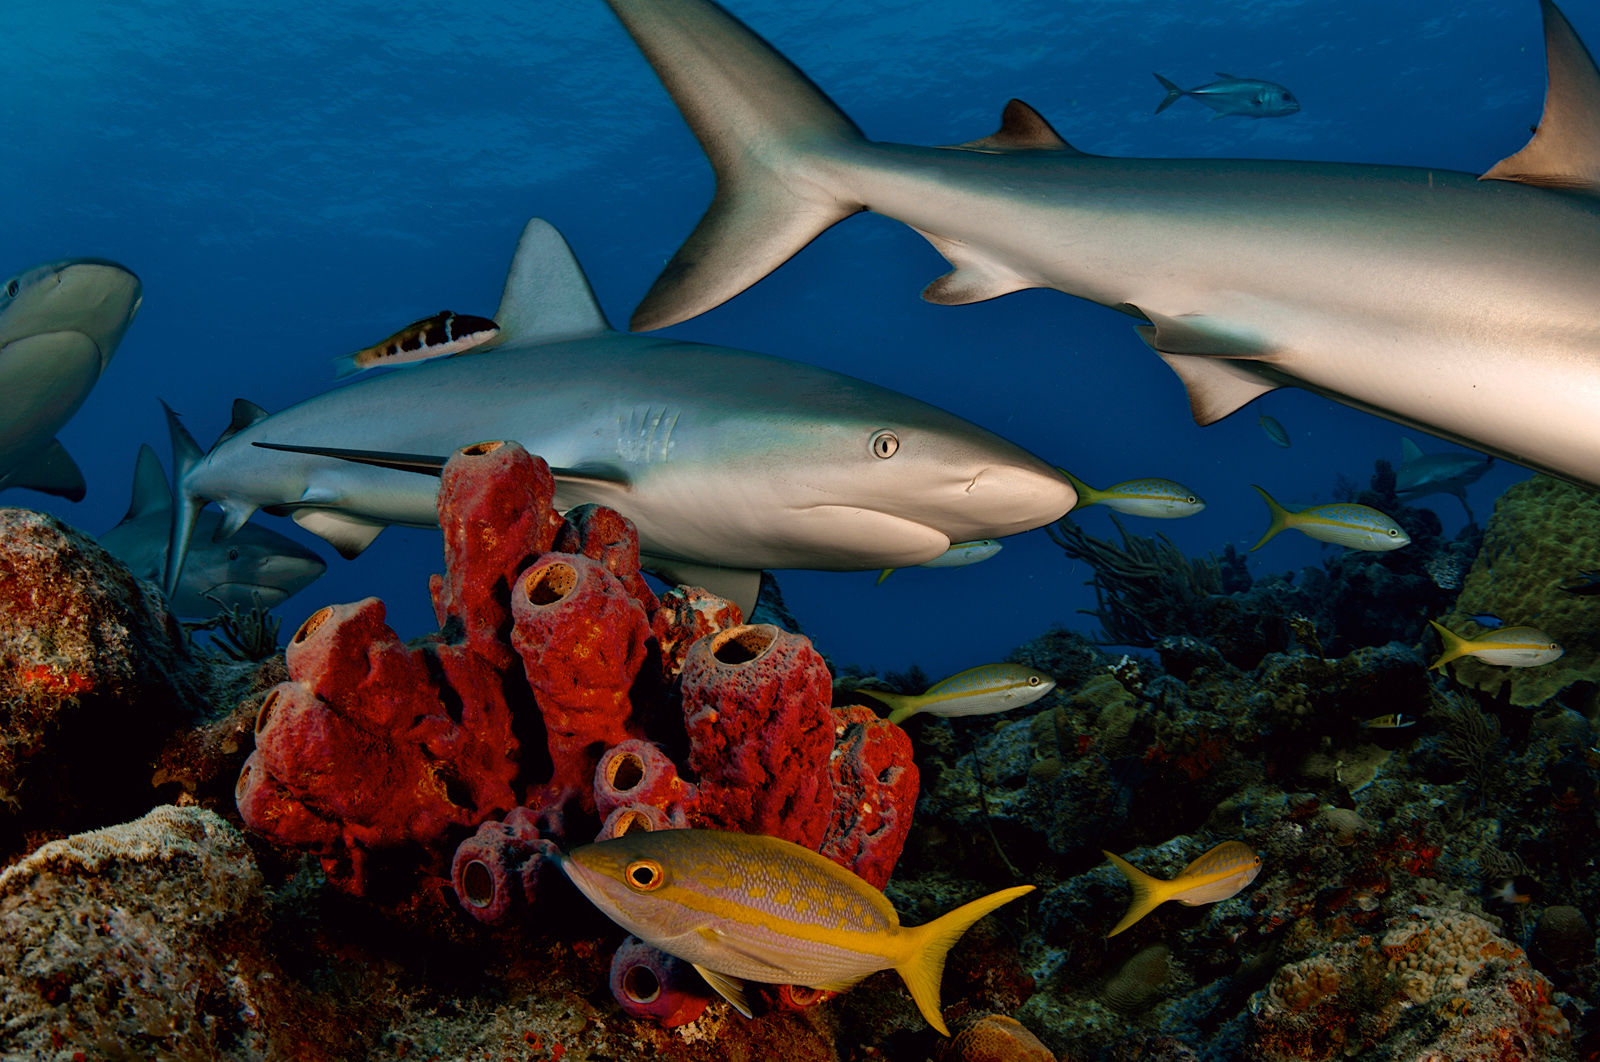 Caribbean reef sharks swim over a coral reef in the Bahamas.<div class='credit'><strong>Credit:</strong> Caribbean reef sharks swim over a coral reef in the Bahamas.</div>